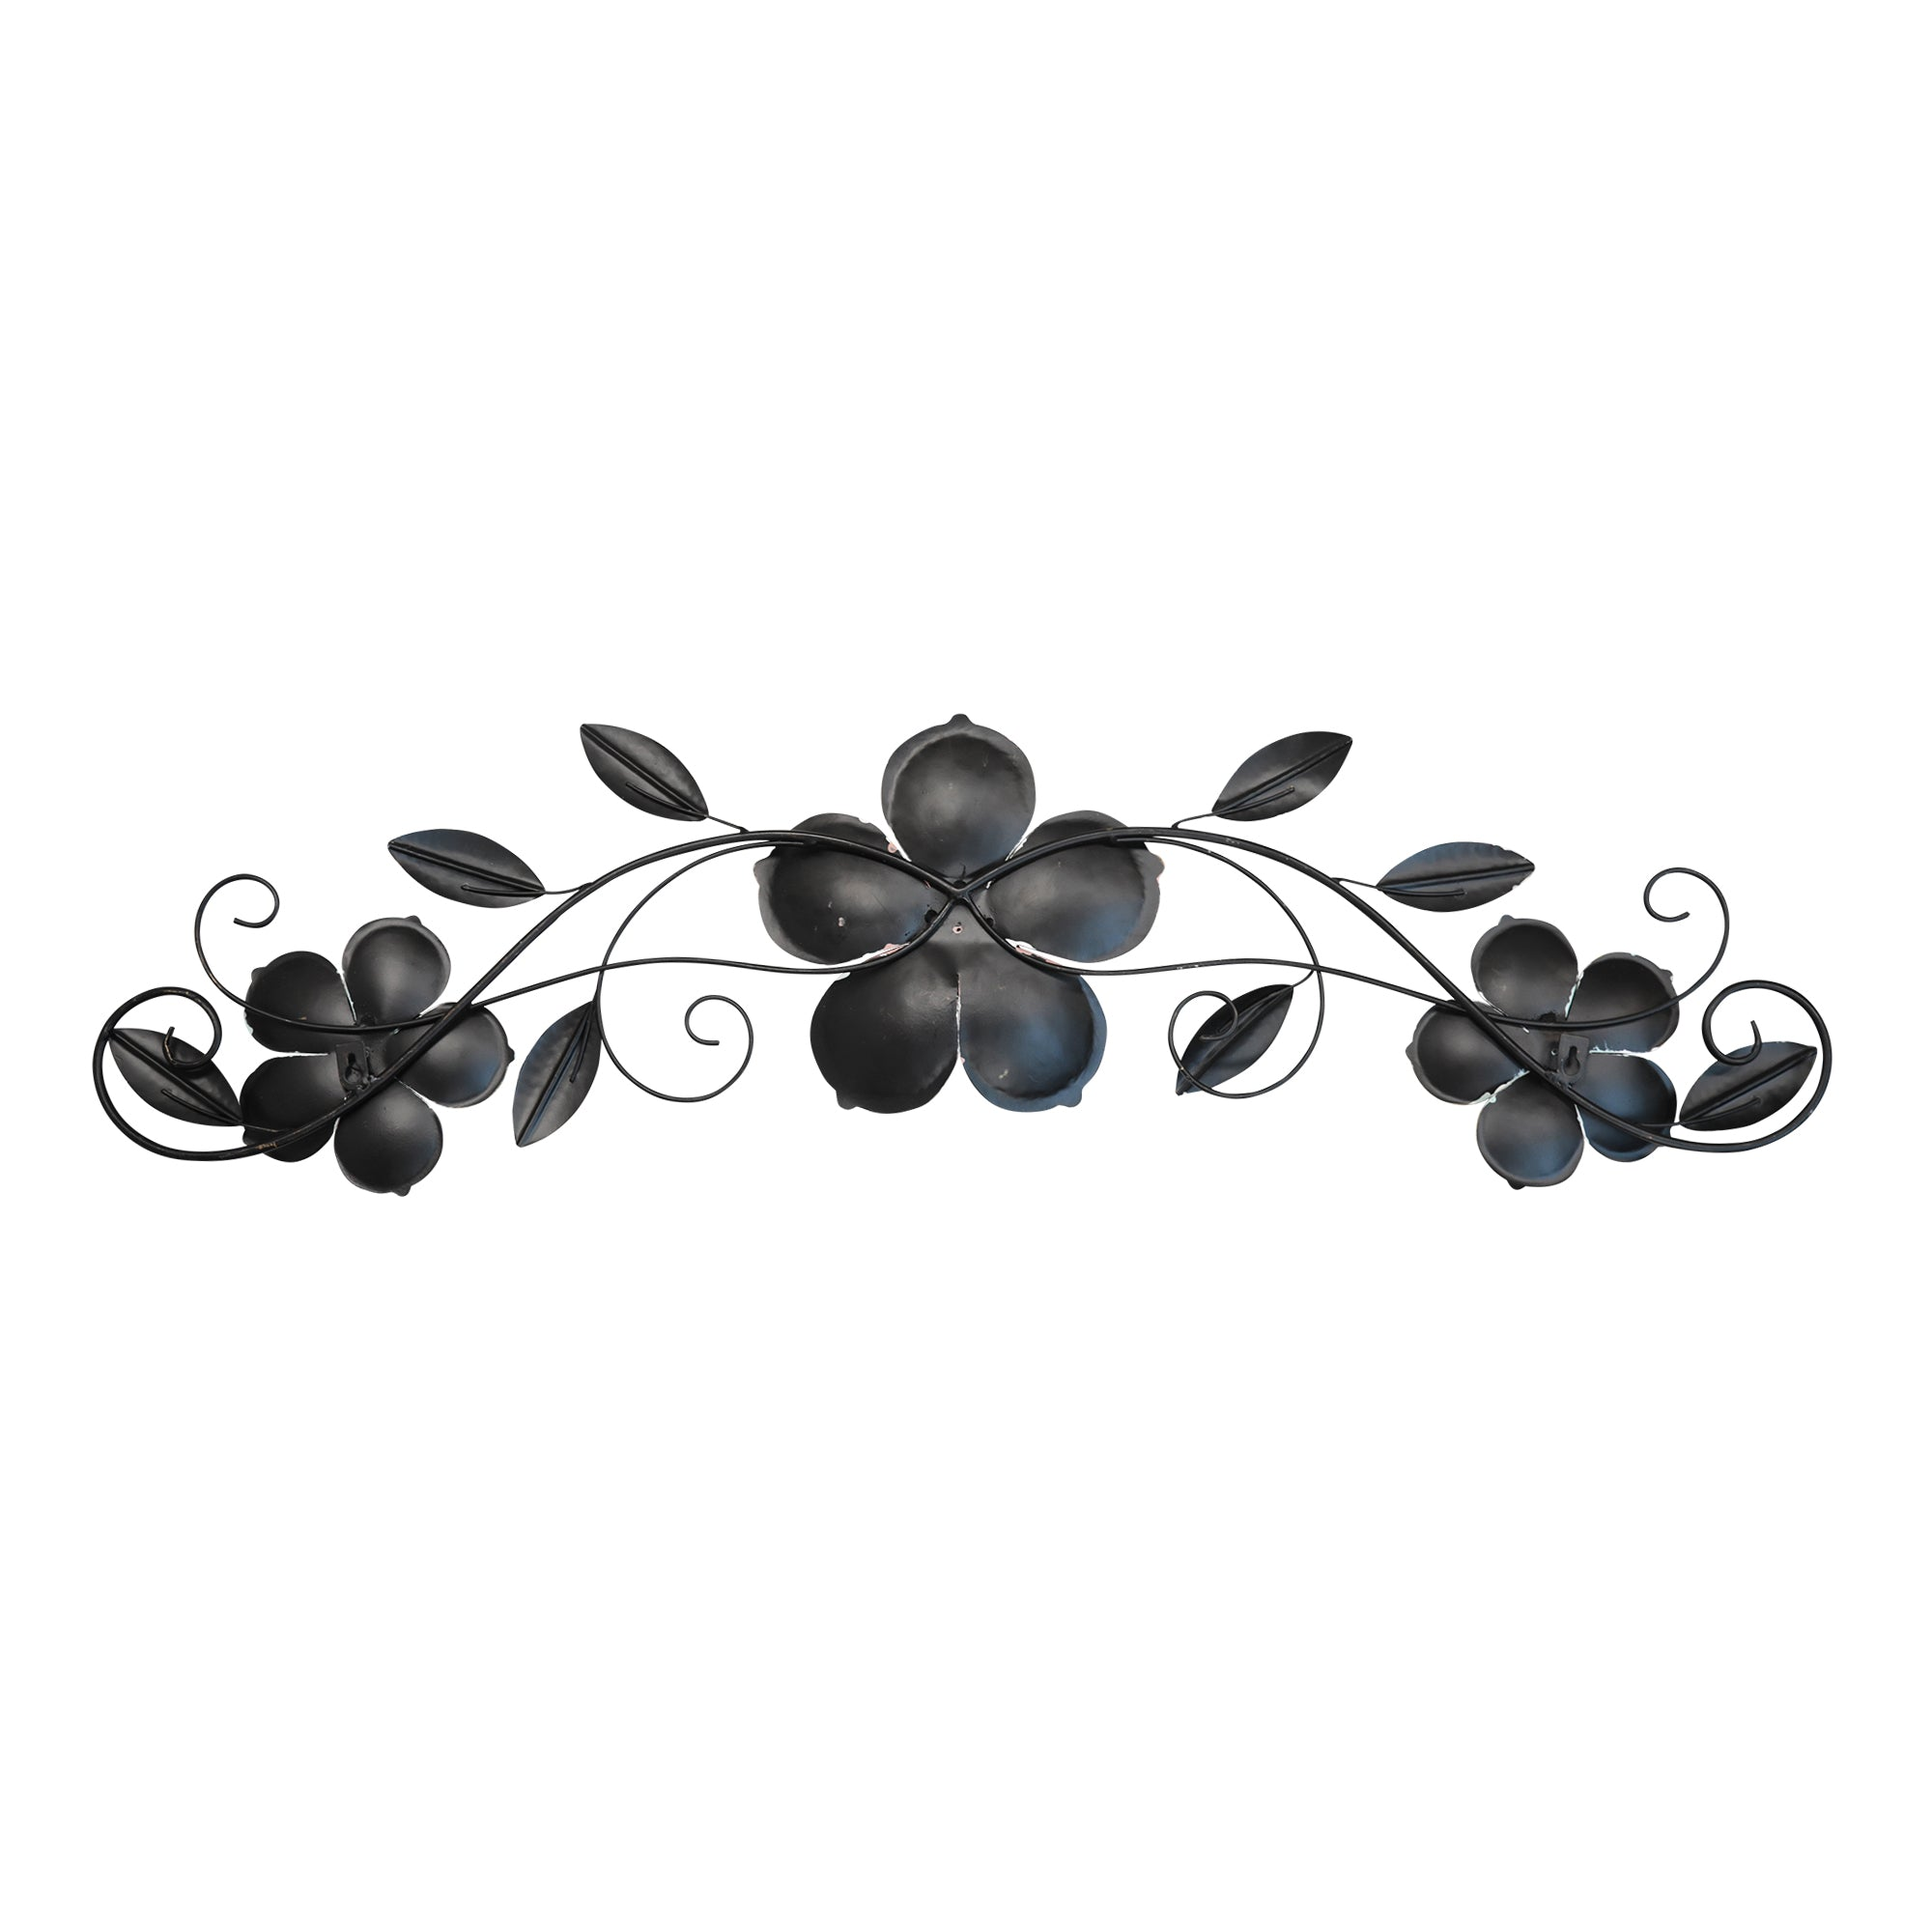 Flower Metal Wall Decor with Metallic Gold Edge Finish